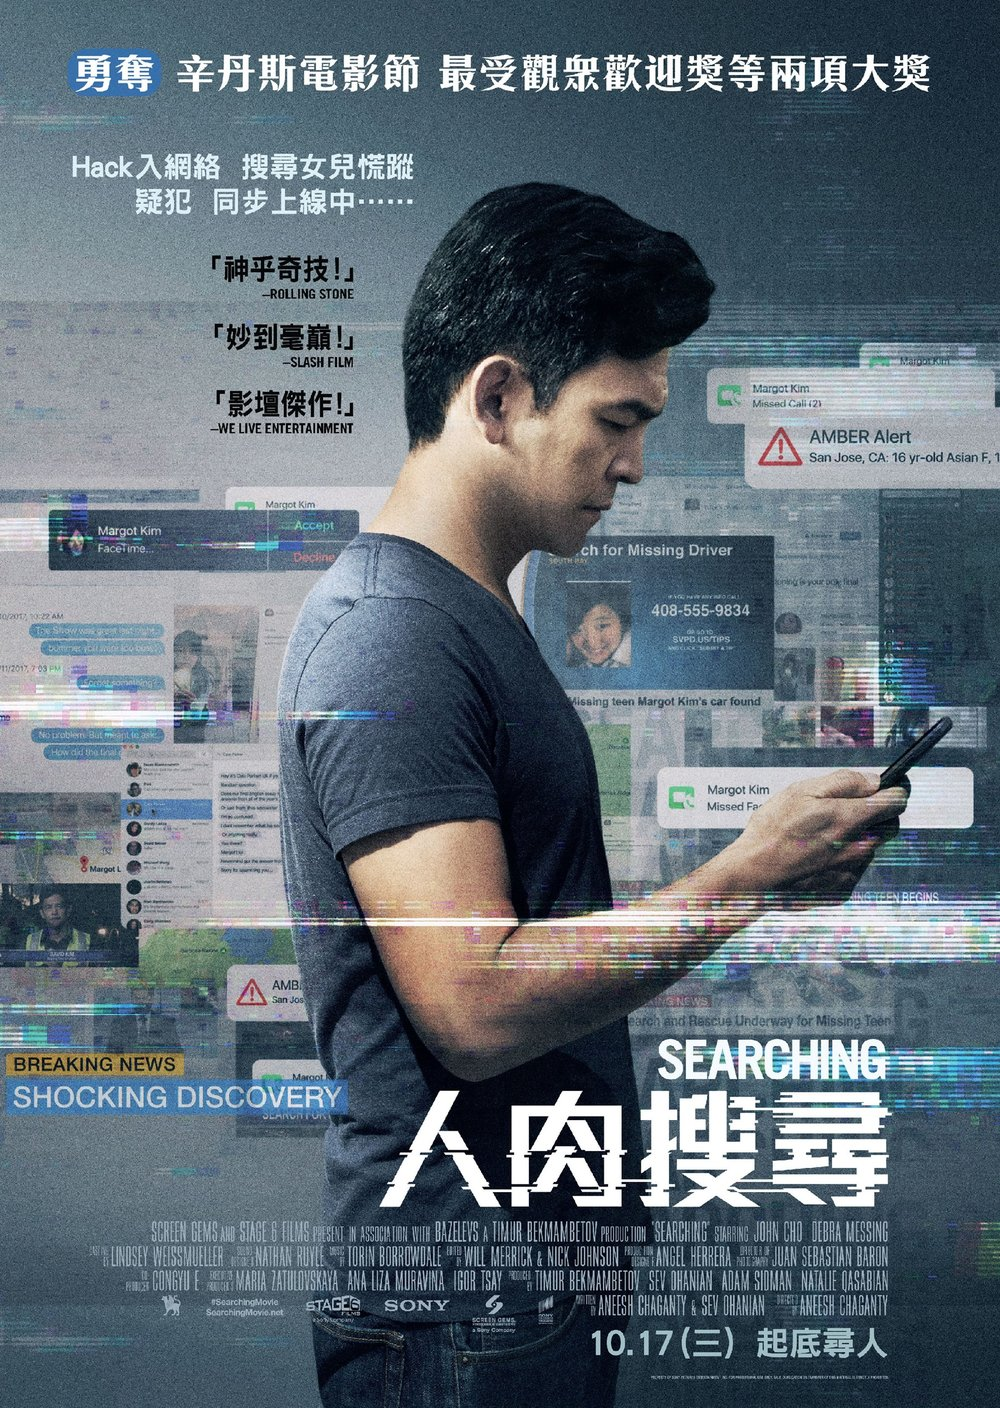 20180823_Searching_Poster.jpg